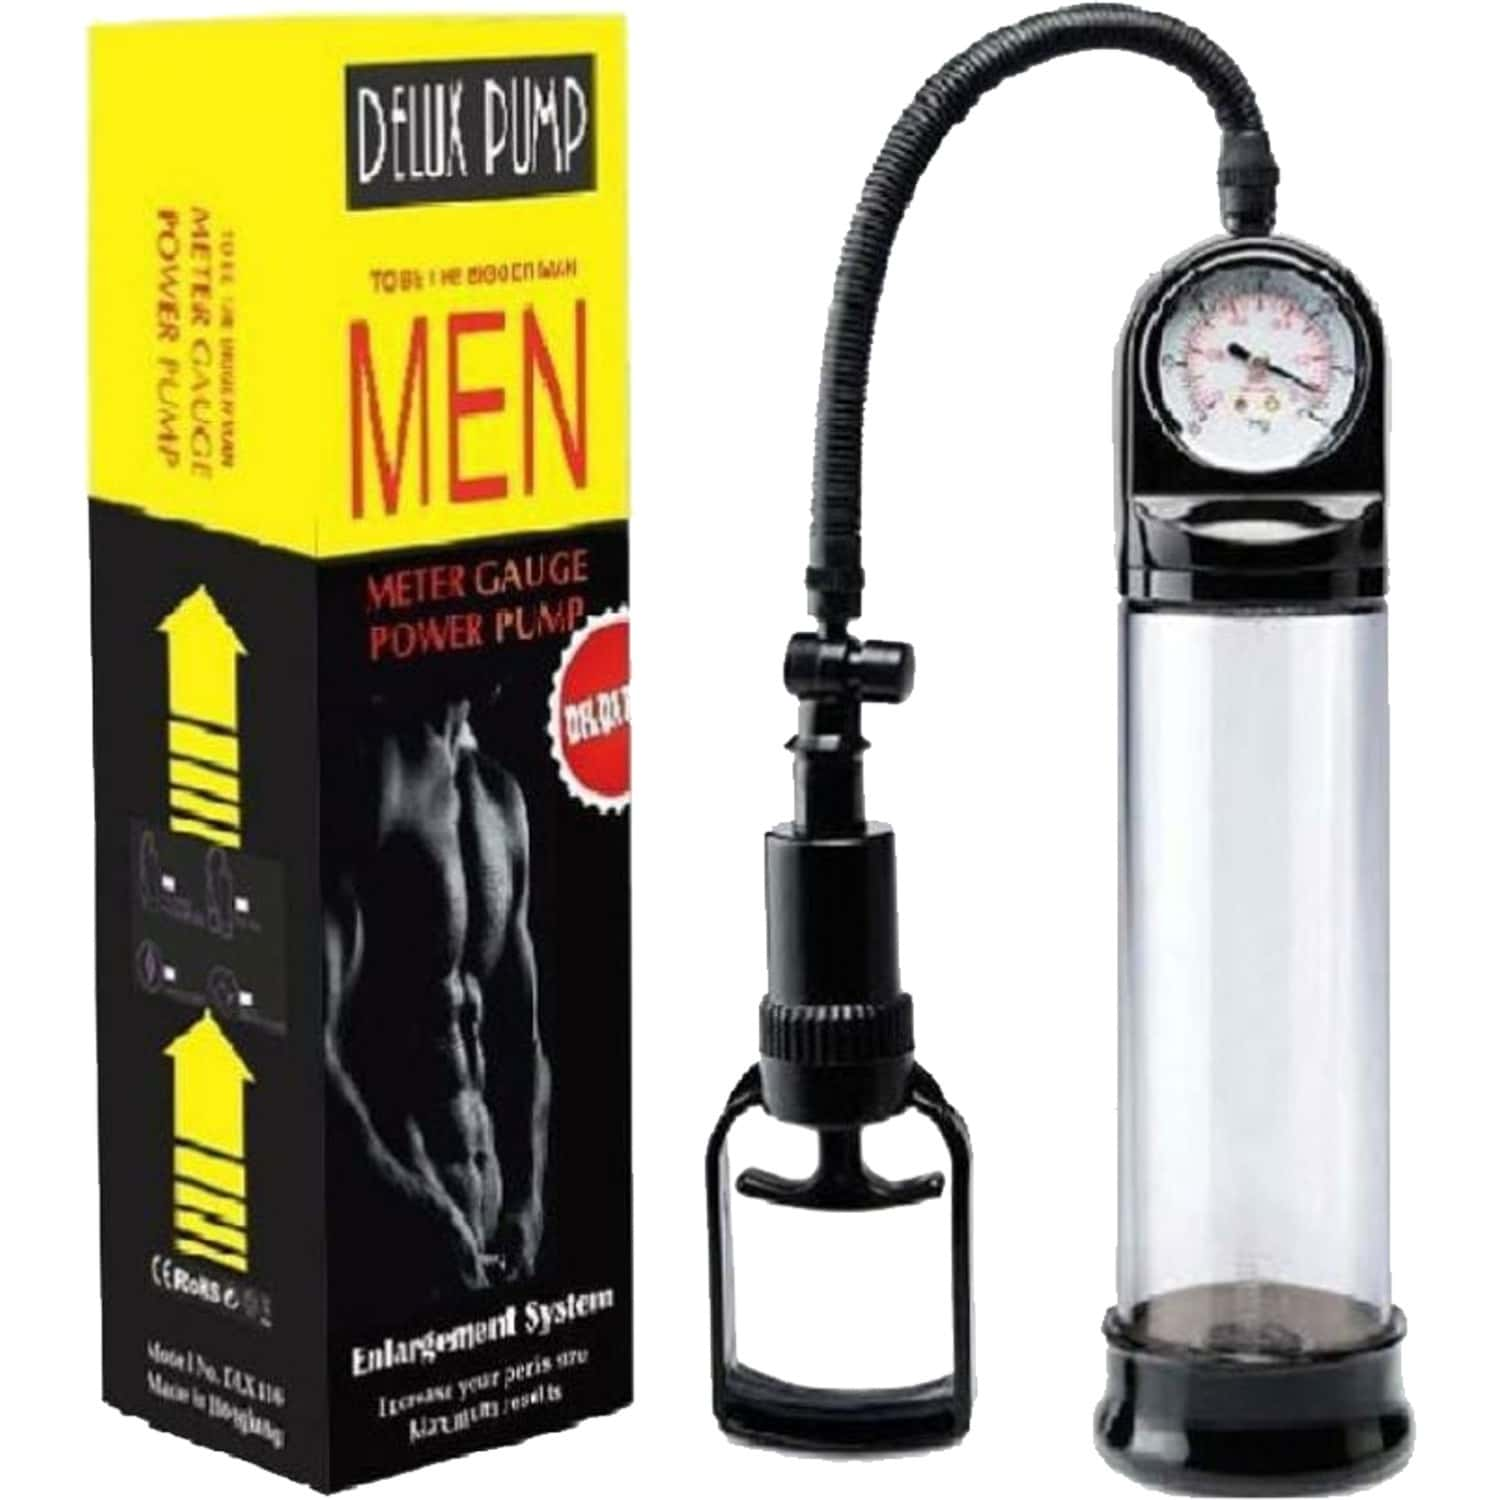 Delux Pumps With Meter Gauge - This Variant Has A Comfortable Handheld Pump With A Quick Release Valve For Comfort - Product For Men - 1 Unit